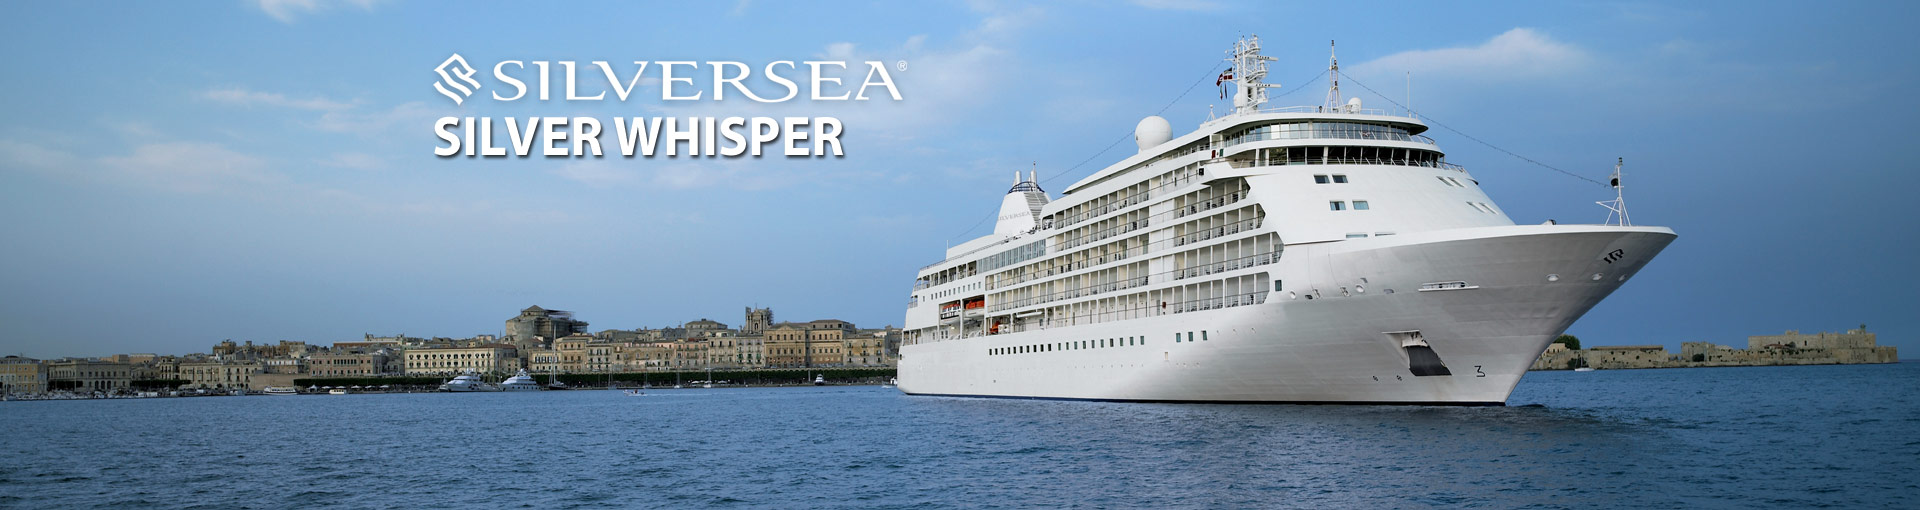 Silversea Cruises Silver Whisper cruise ship